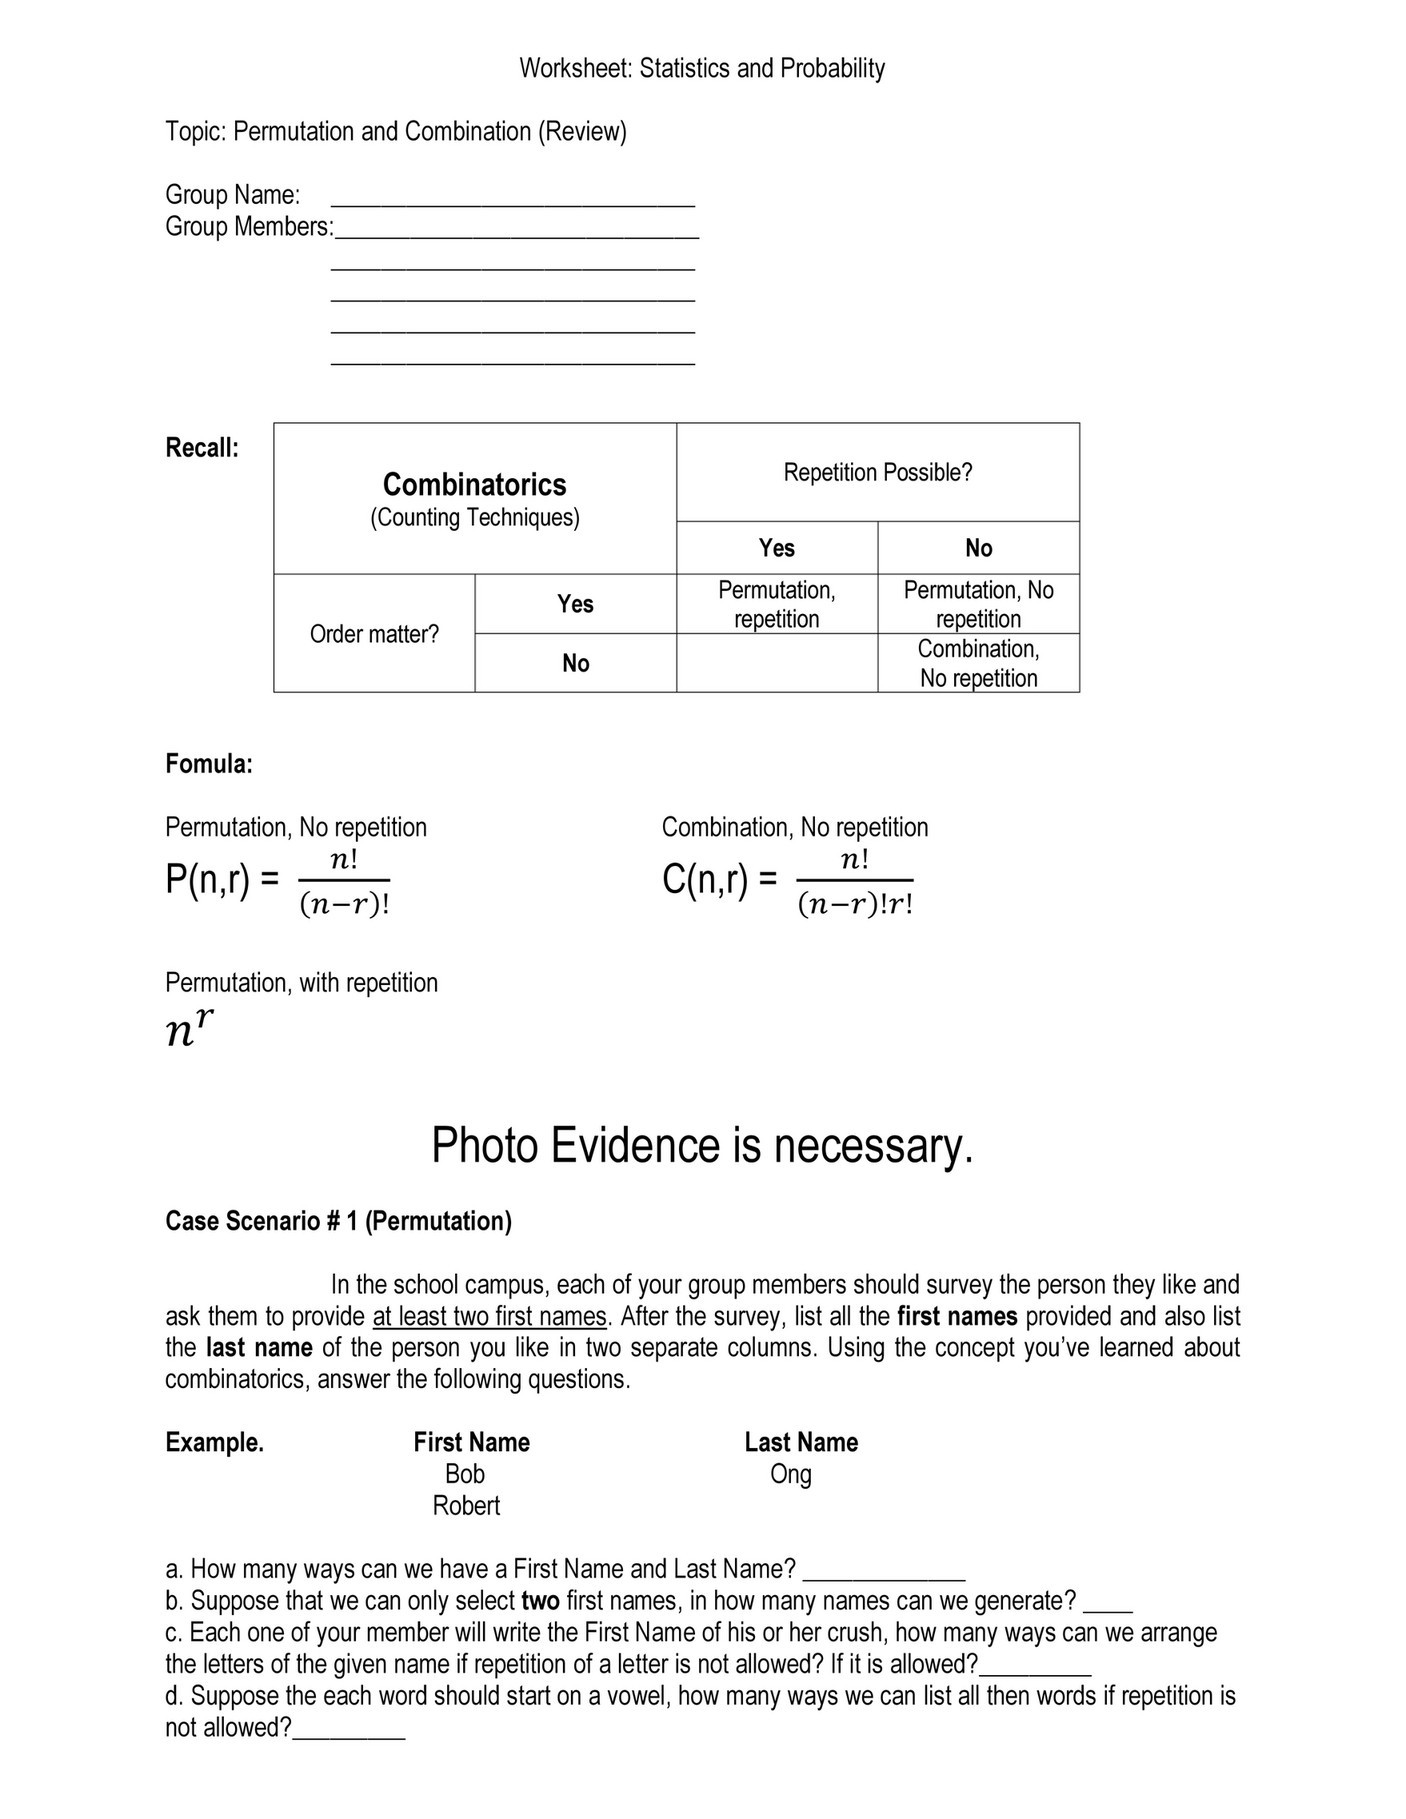 Combinations and Permutations Worksheet